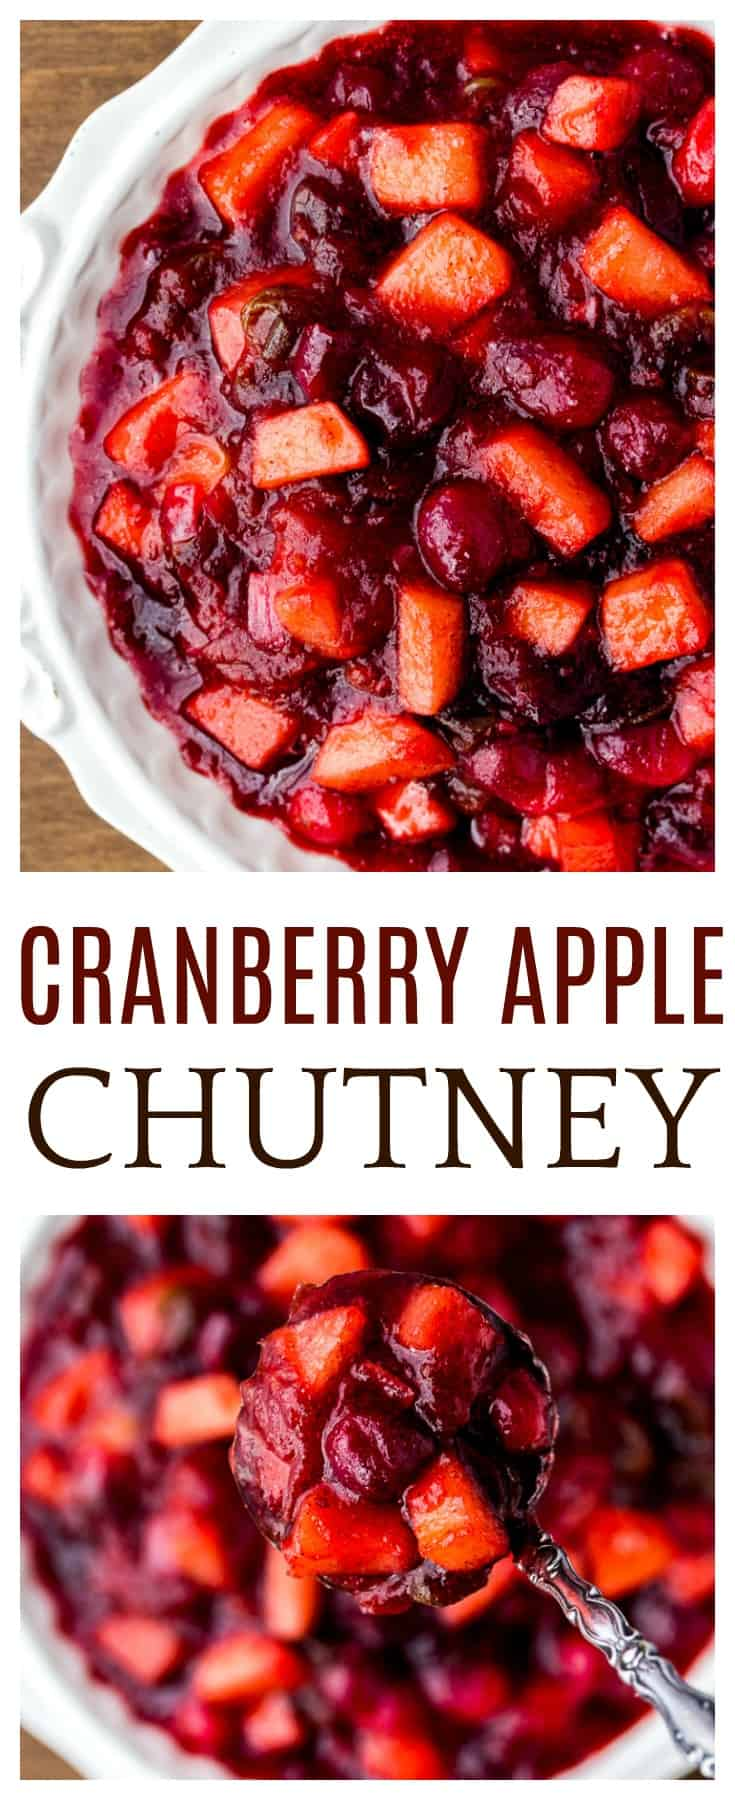 Cranberry Apple Chutney is a simple recipe made with sweet and savory ingredients to take your main dish to a whole new level. Serve it over pork, chicken, or turkey. It's also a great side dish recipe to serve at Thanksgiving and other holiday meals! | #dlbrecipes #cranberrychutney #applechutney #sidedish #thanksgiving